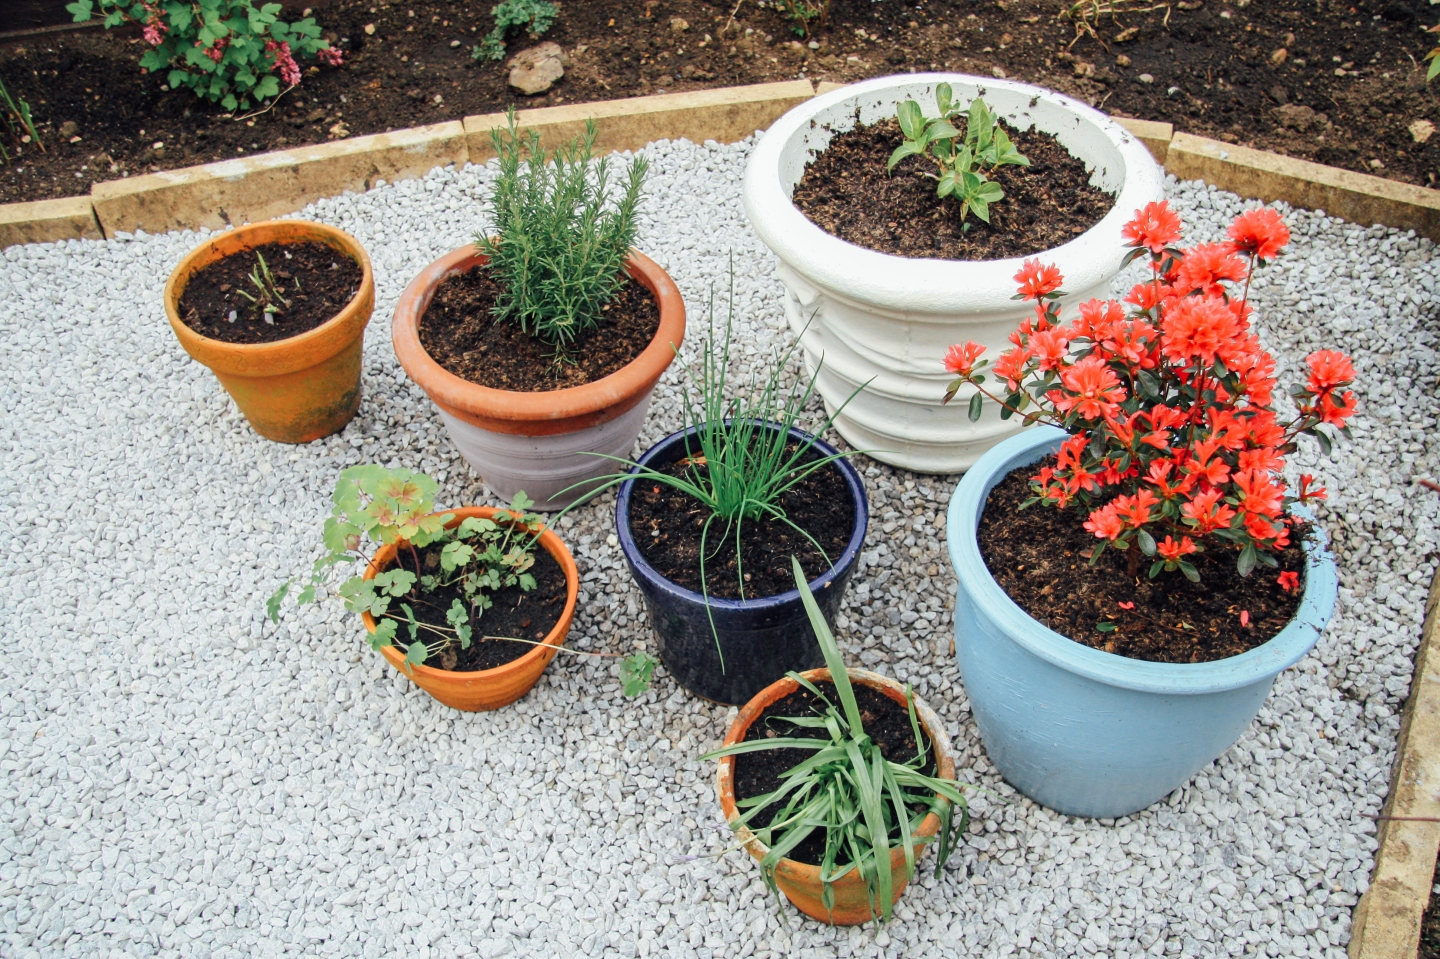 Colourful pots with plants